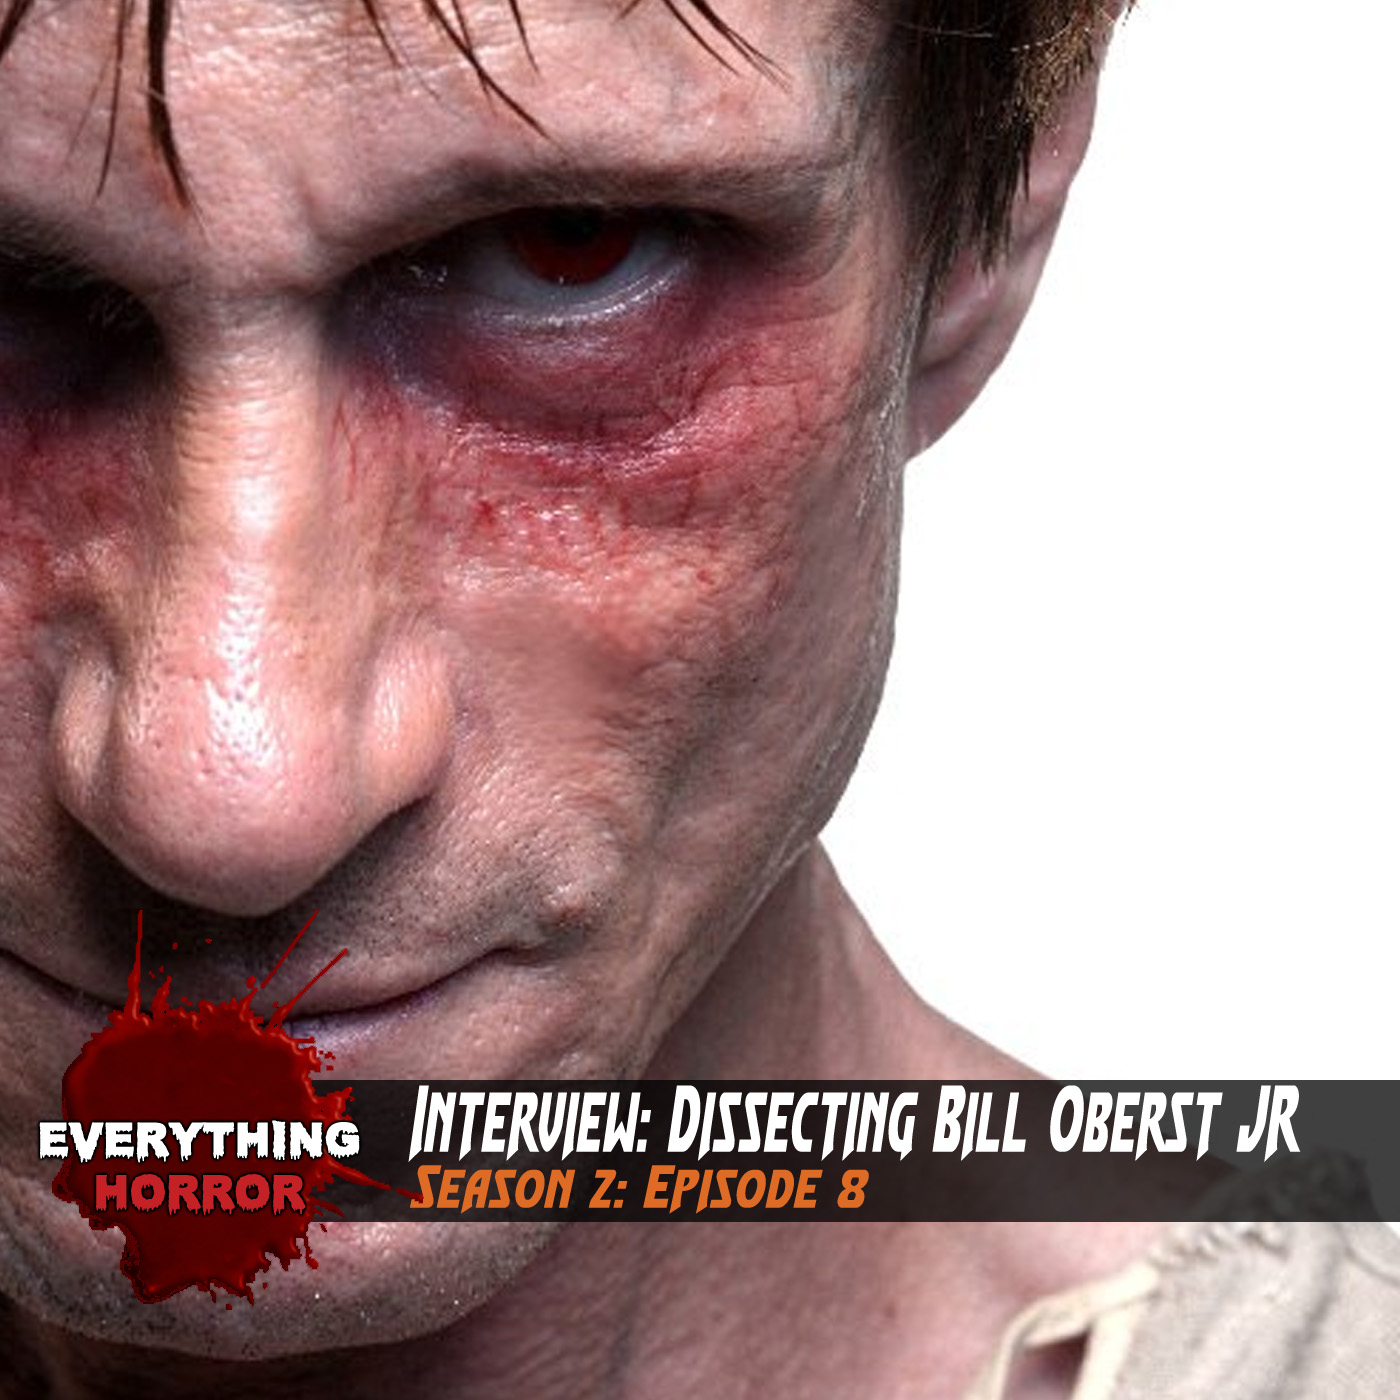 S2: Ep 8. Dissecting Bill Oberst Jr.